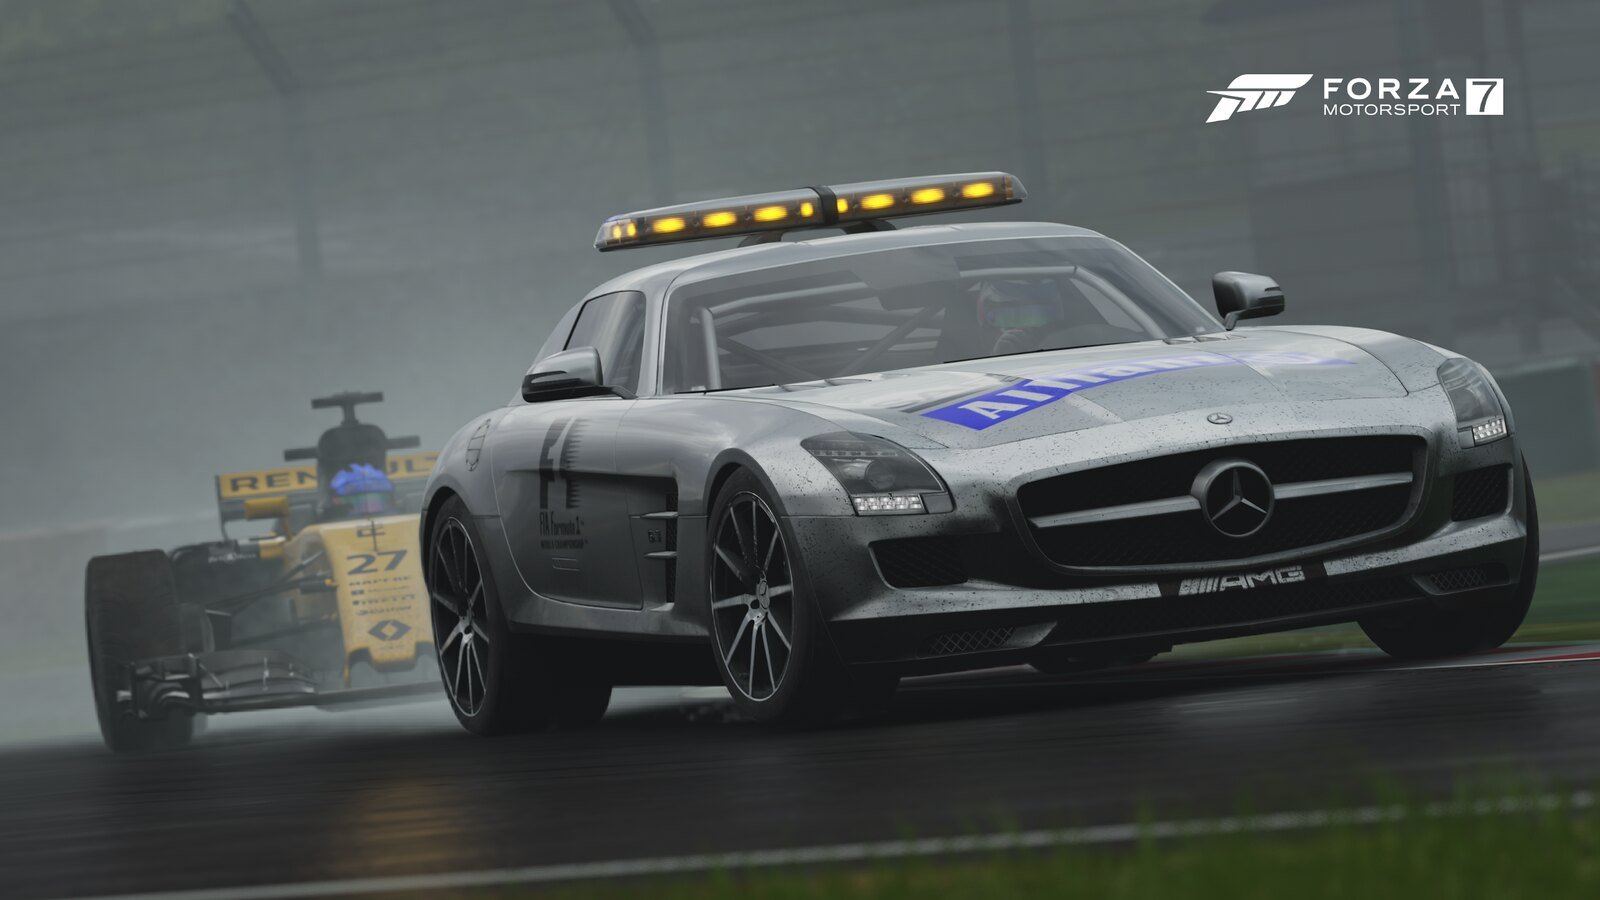 Unique Upgrades In Fm7 Leagues Rejoice With Safety Car